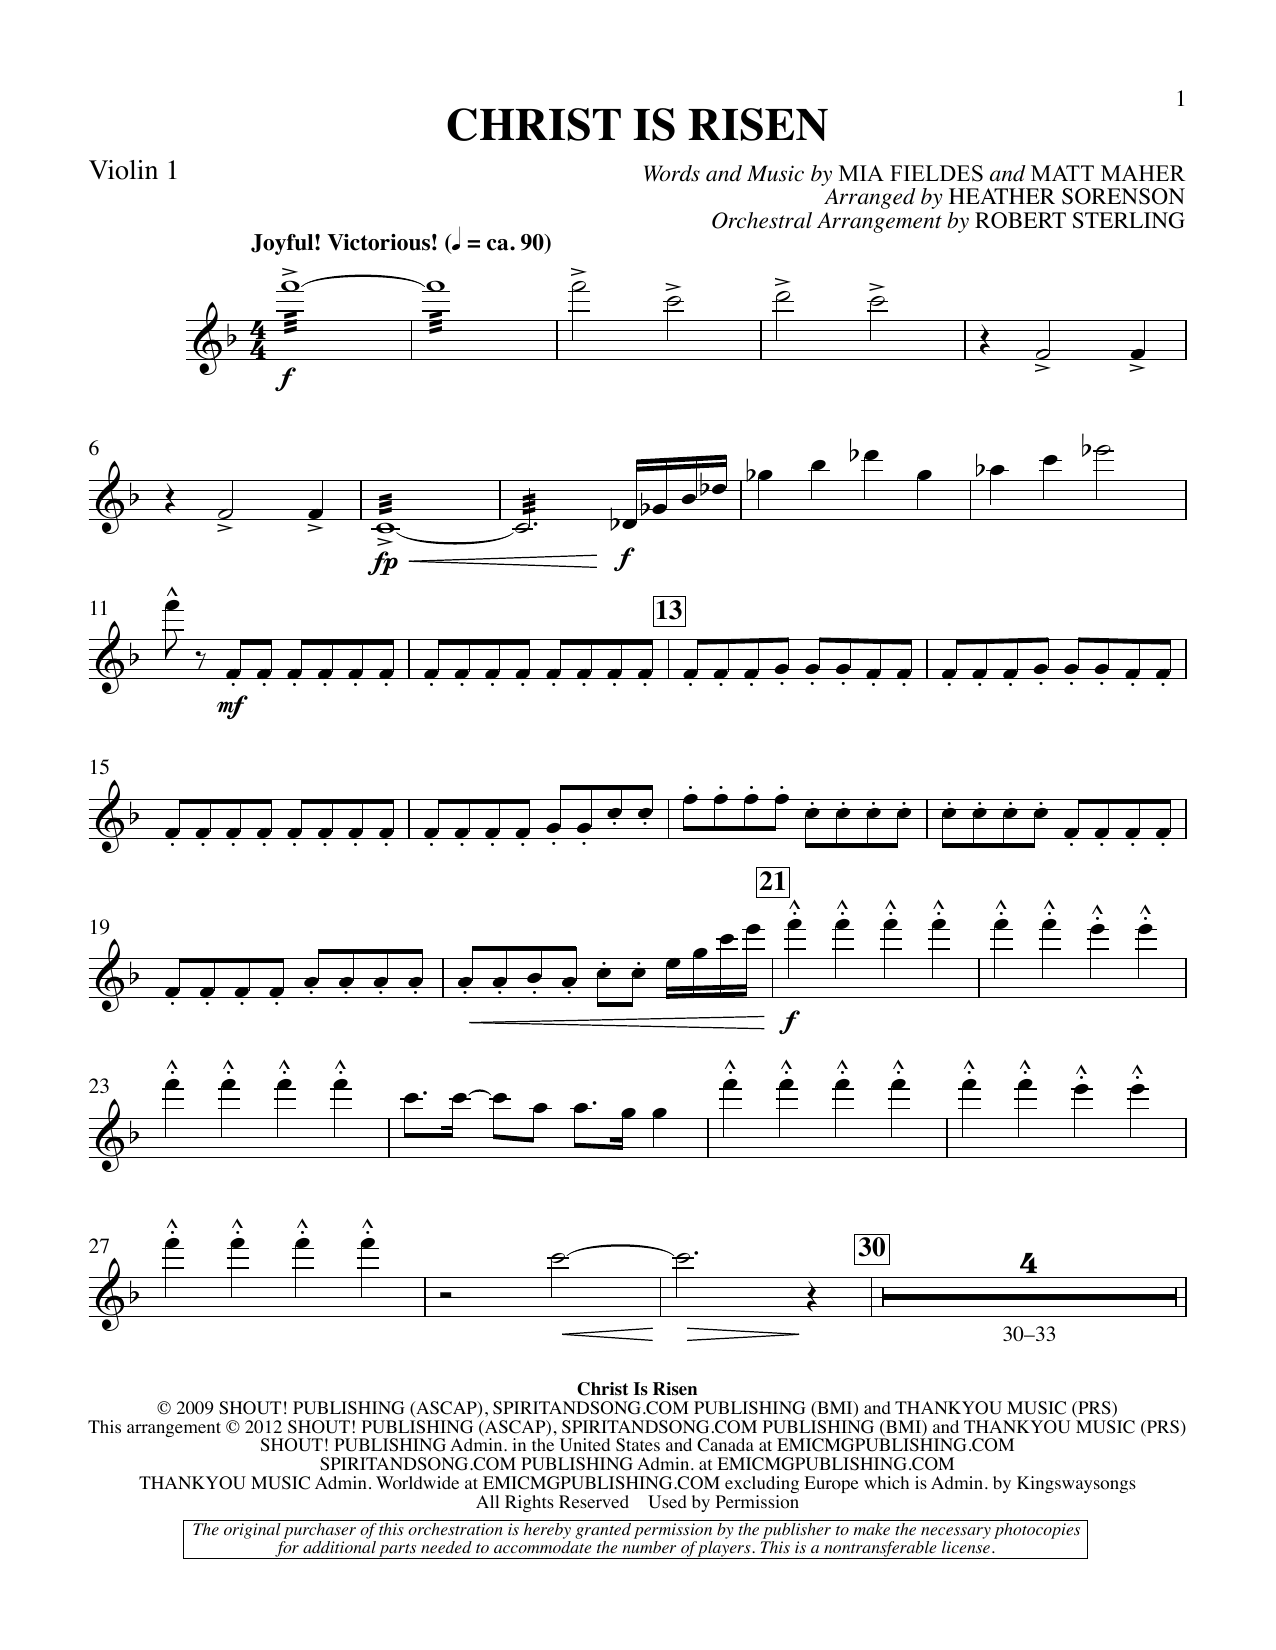 The Beautiful Christ (An Easter Celebration Of Grace) - Violin 1 Sheet Music